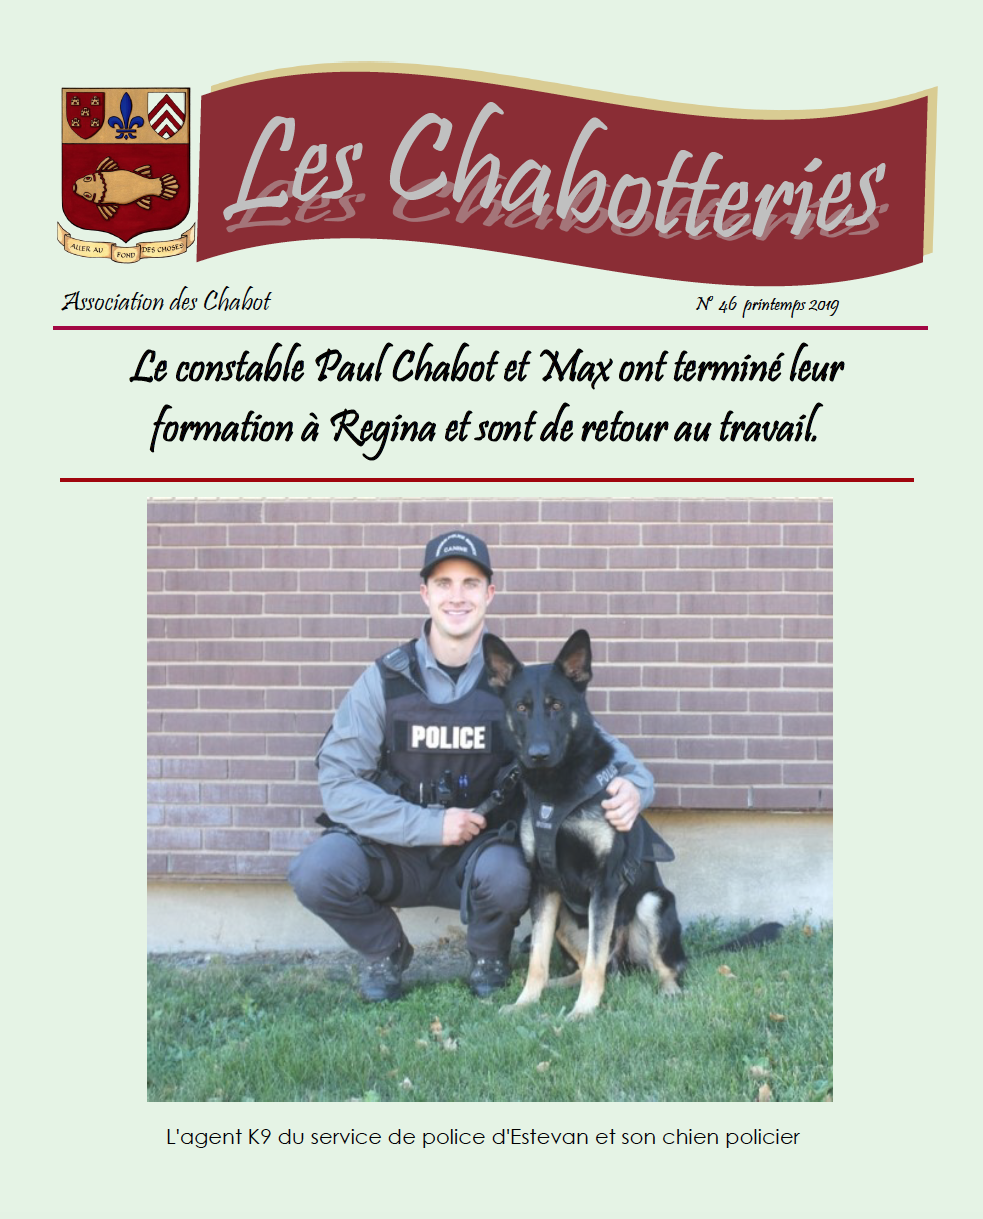 Chabotteries 45 | Association des Chabot